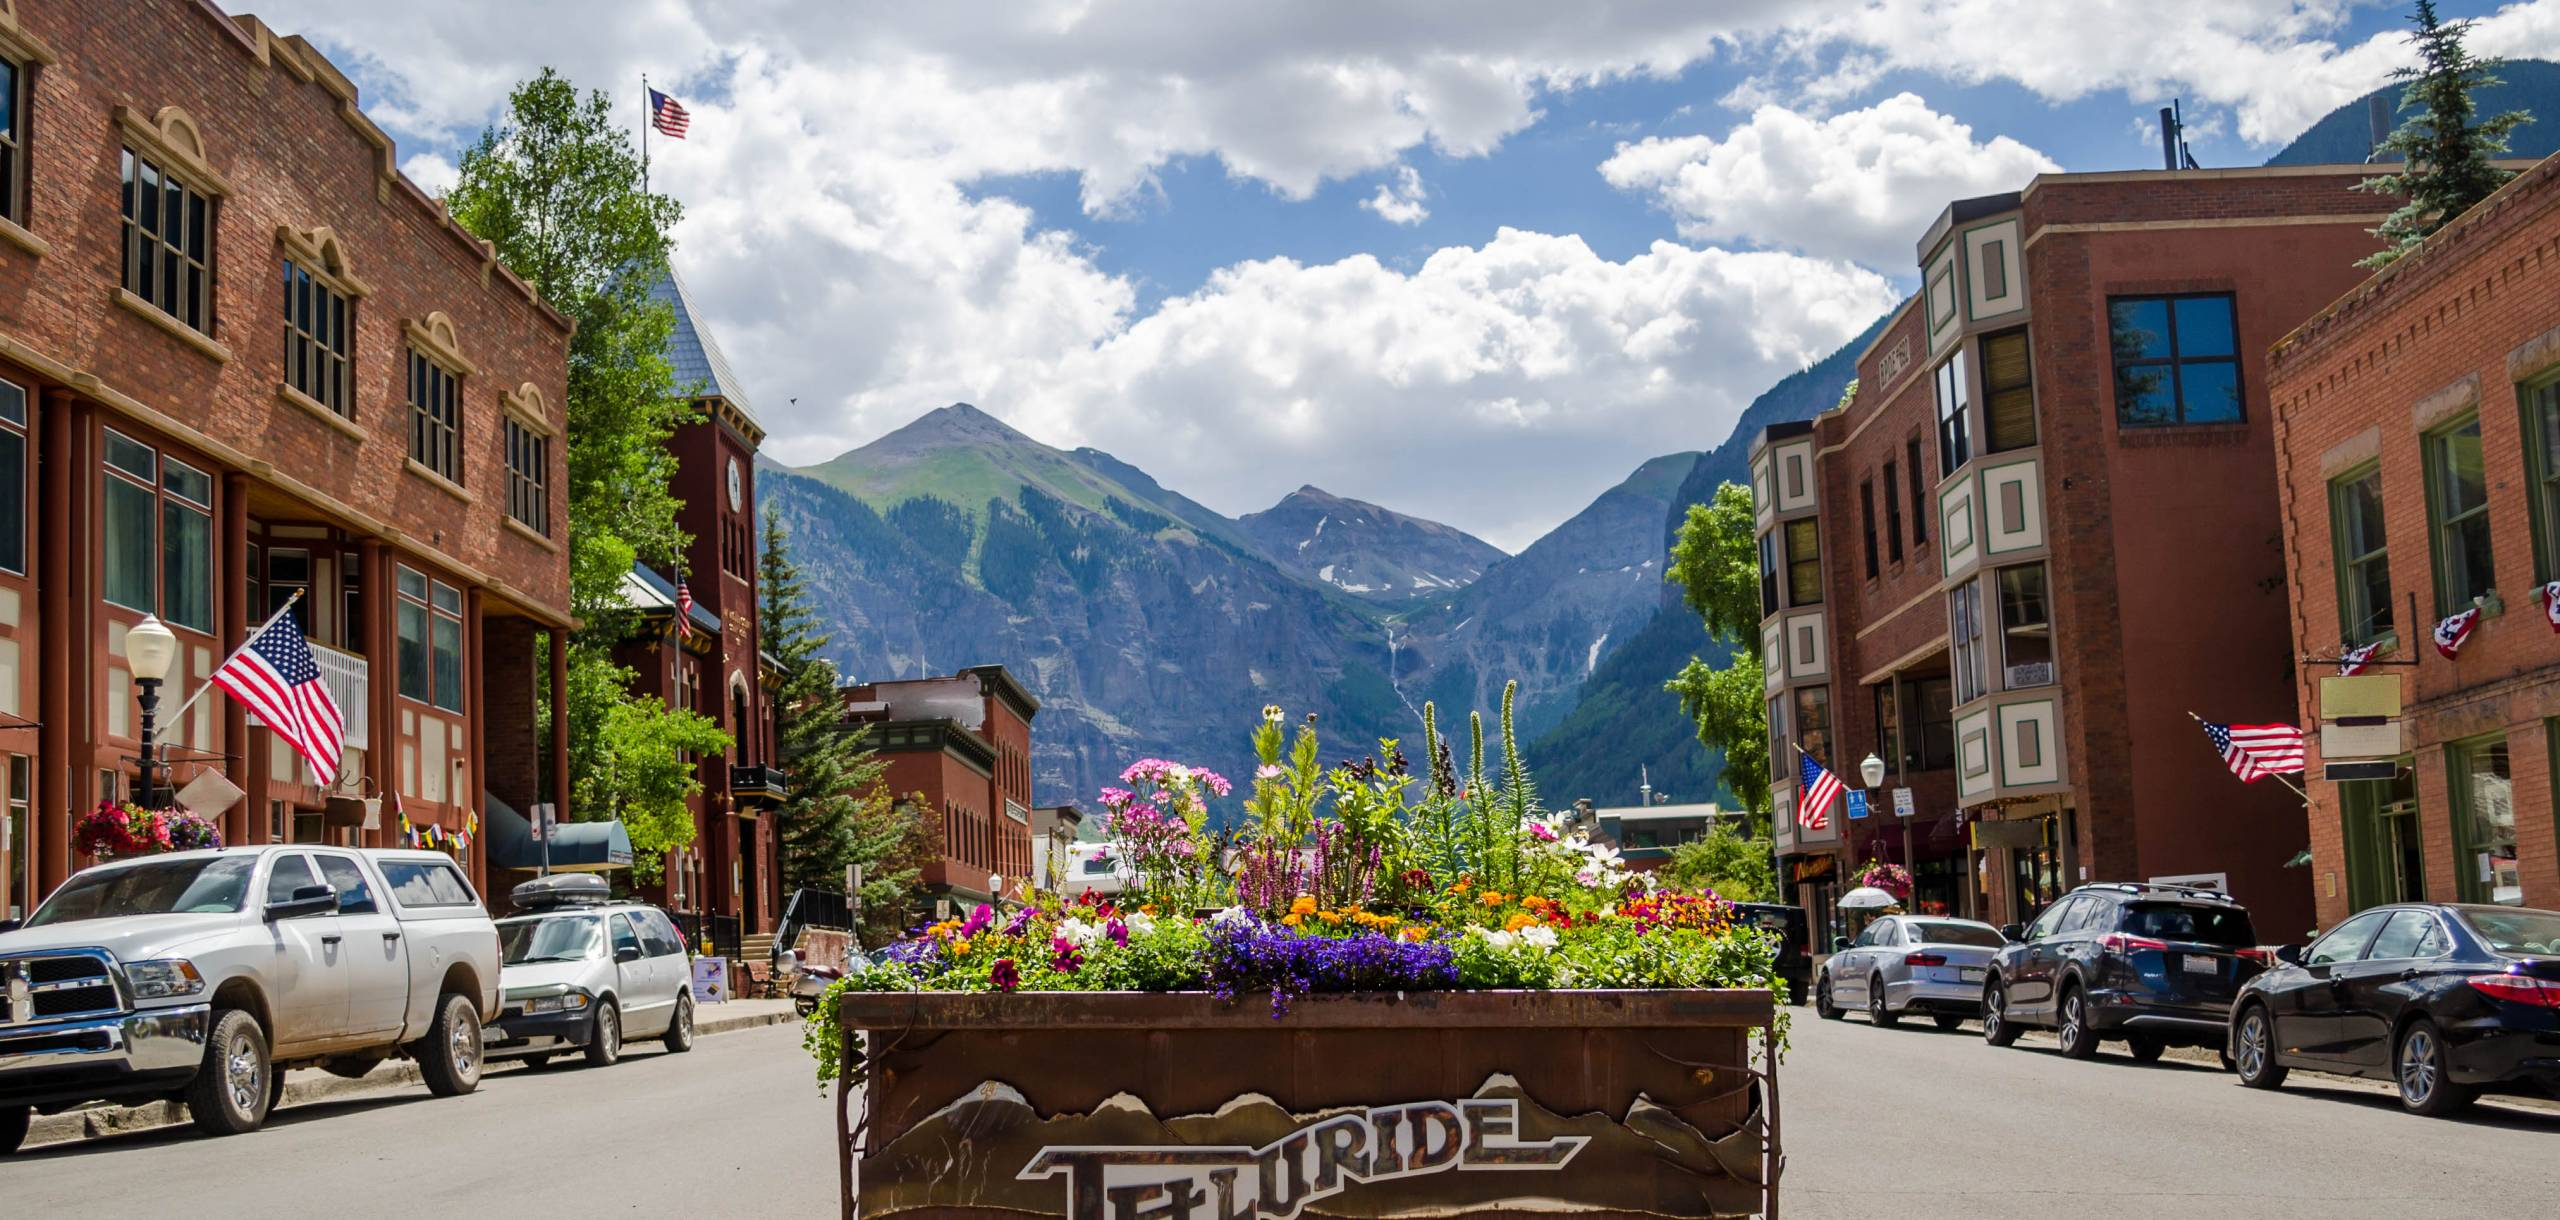 Bear Creek Lodge Summer Downtown Telluride